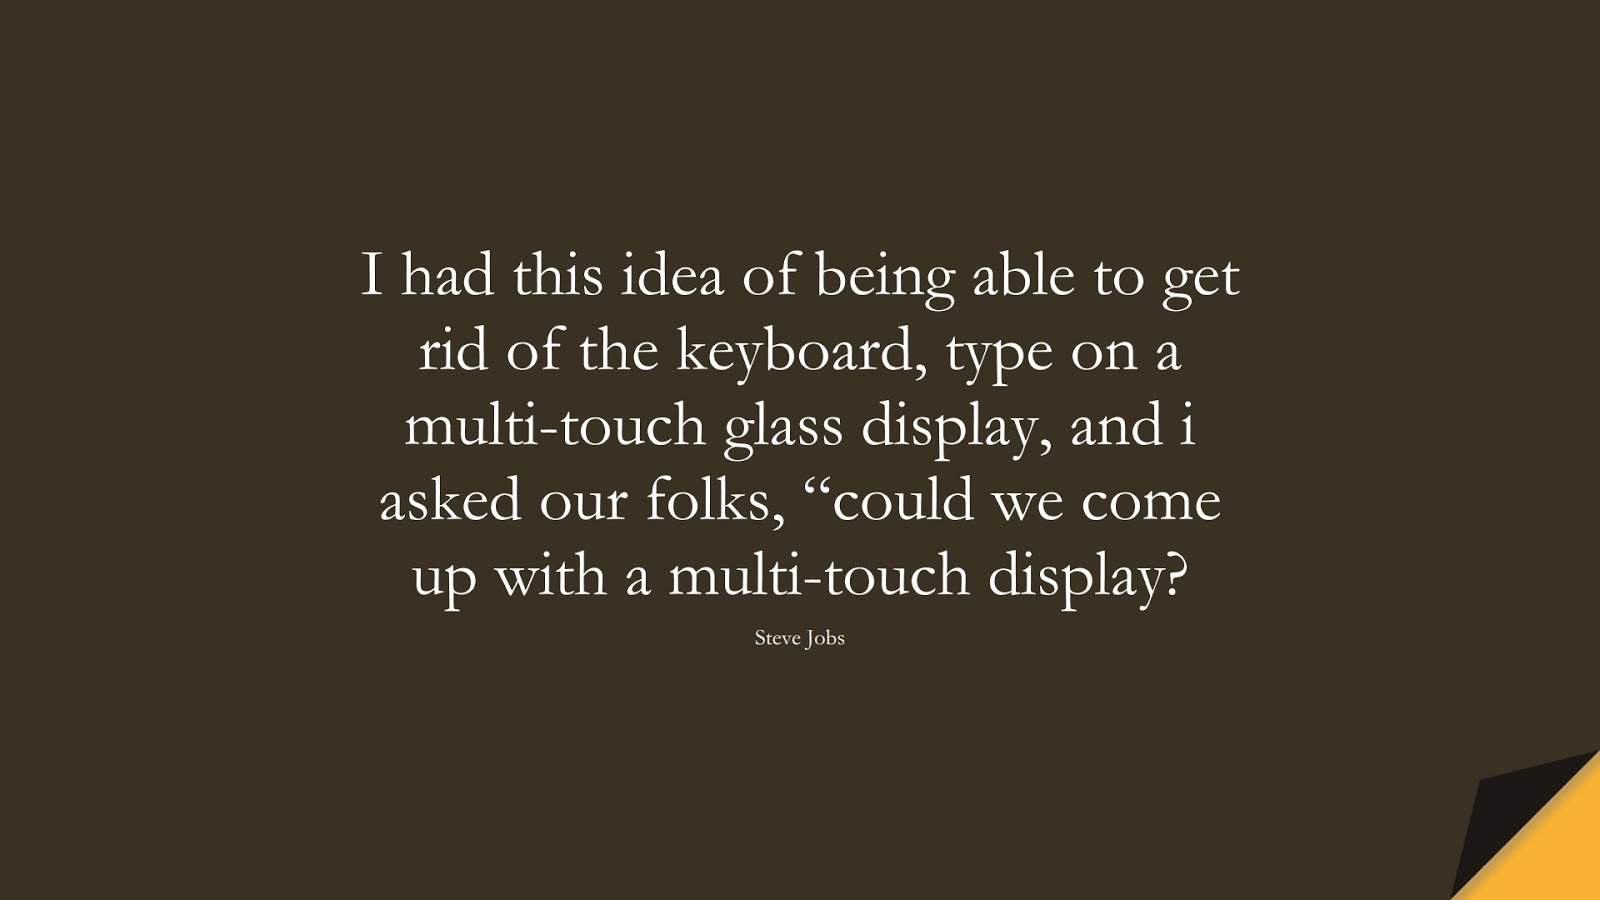 """I had this idea of being able to get rid of the keyboard, type on a multi-touch glass display, and i asked our folks, """"could we come up with a multi-touch display? (Steve Jobs);  #SteveJobsQuotes"""